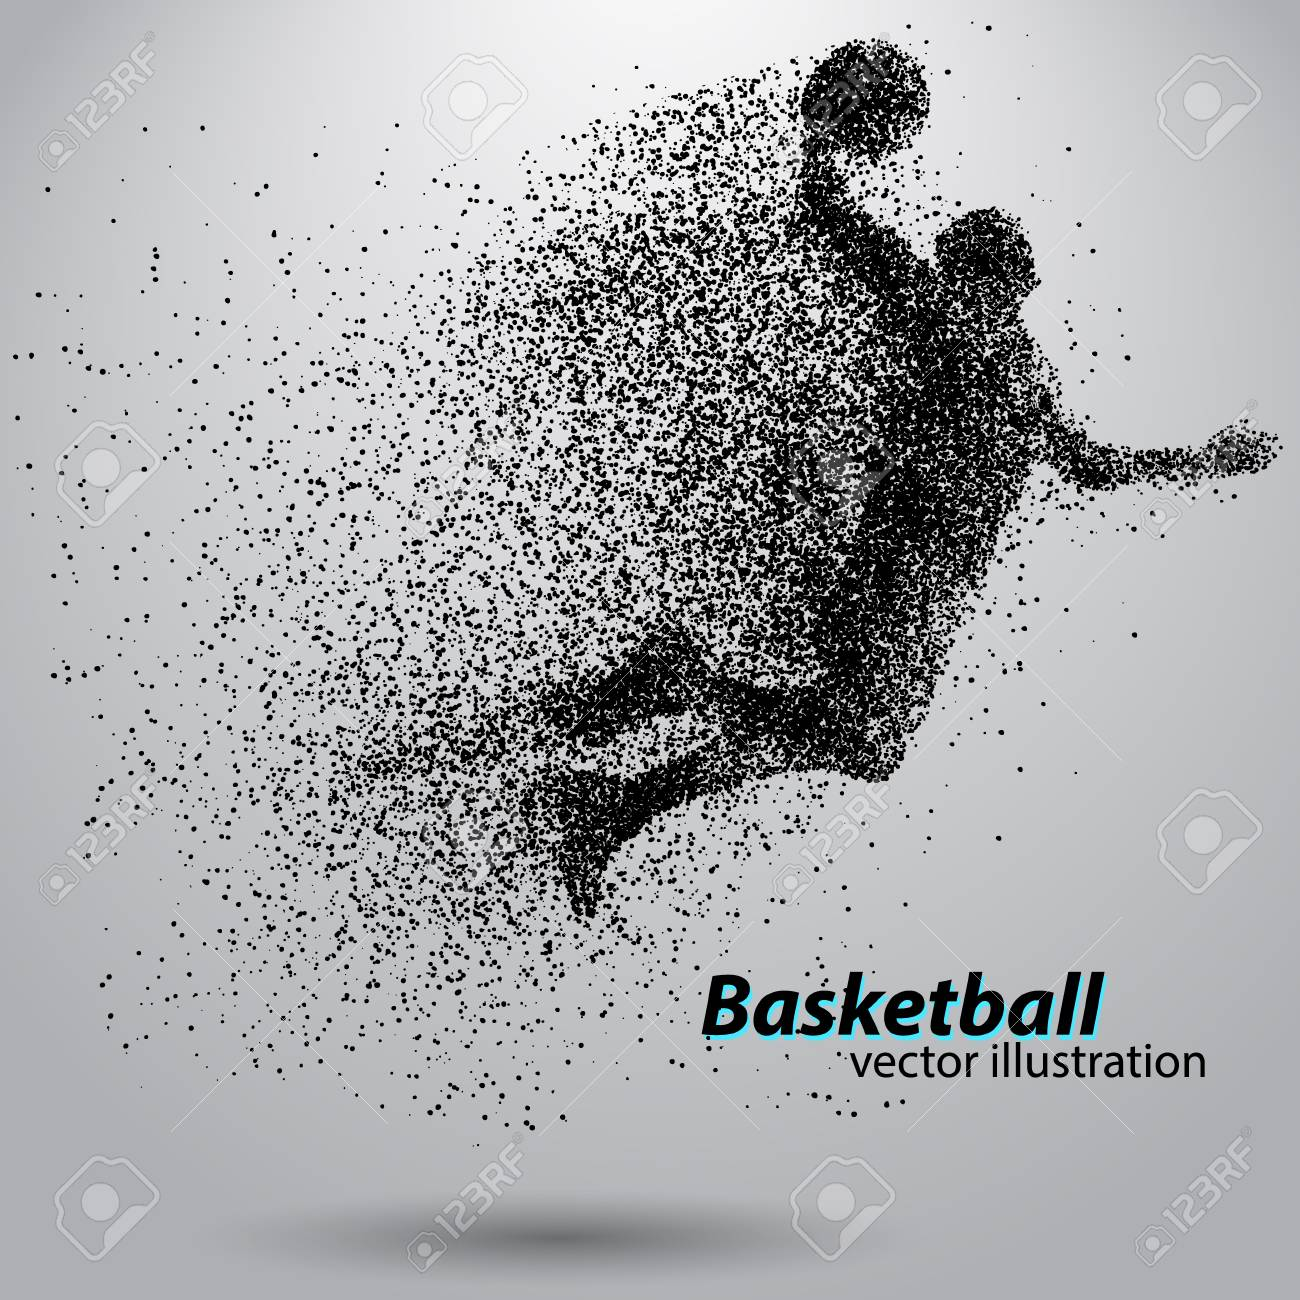 Basketball player from particles. Background and text on a separate layer, color can be changed in one click. Basketball abstract - 67497388